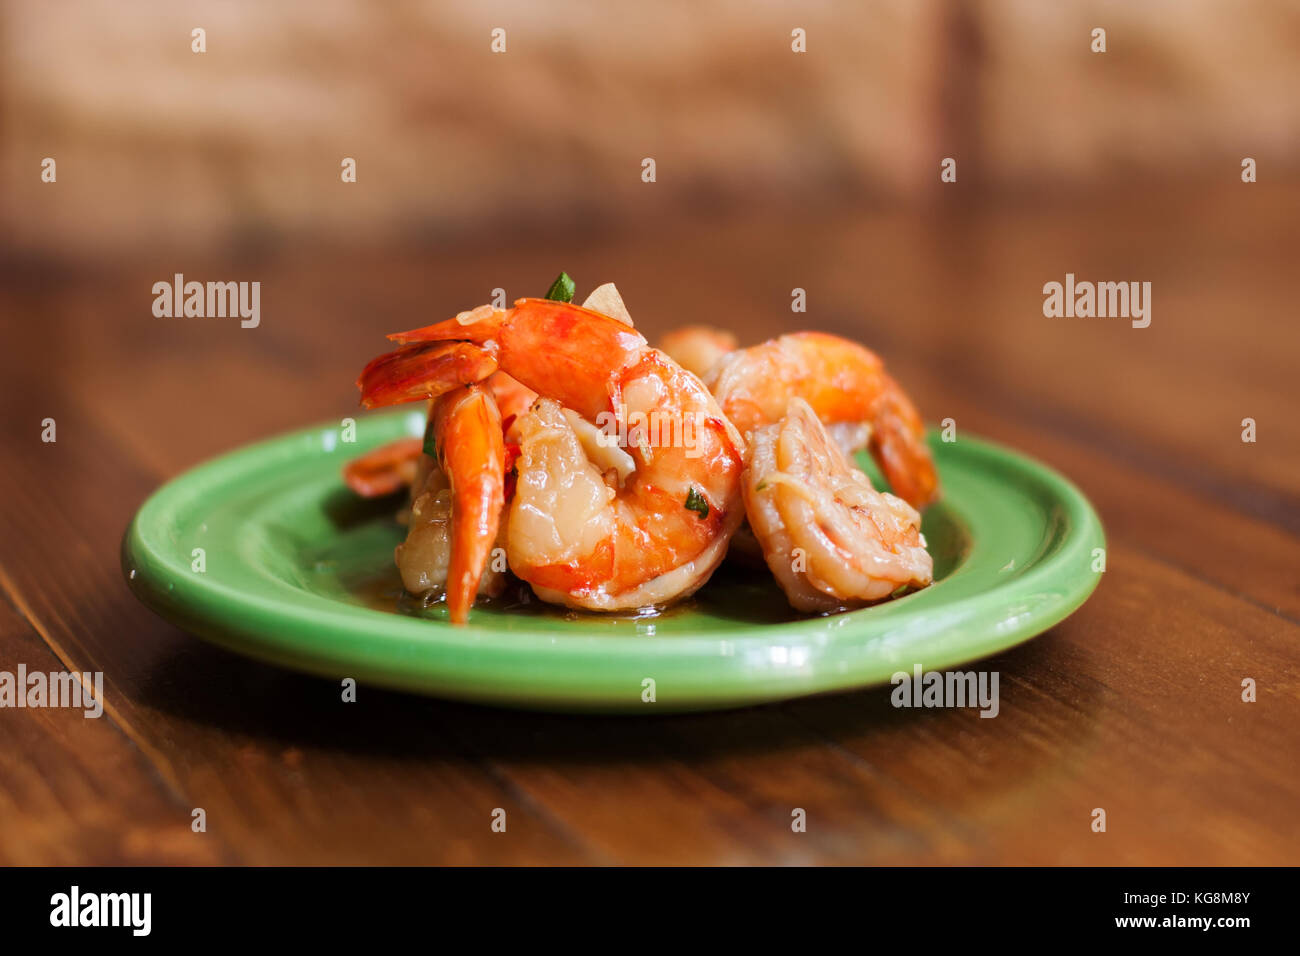 Pickled marinated shrimp in a green plate. Traditional mediterranean cuisine food, spanish tapas. Wooden table, - Stock Image